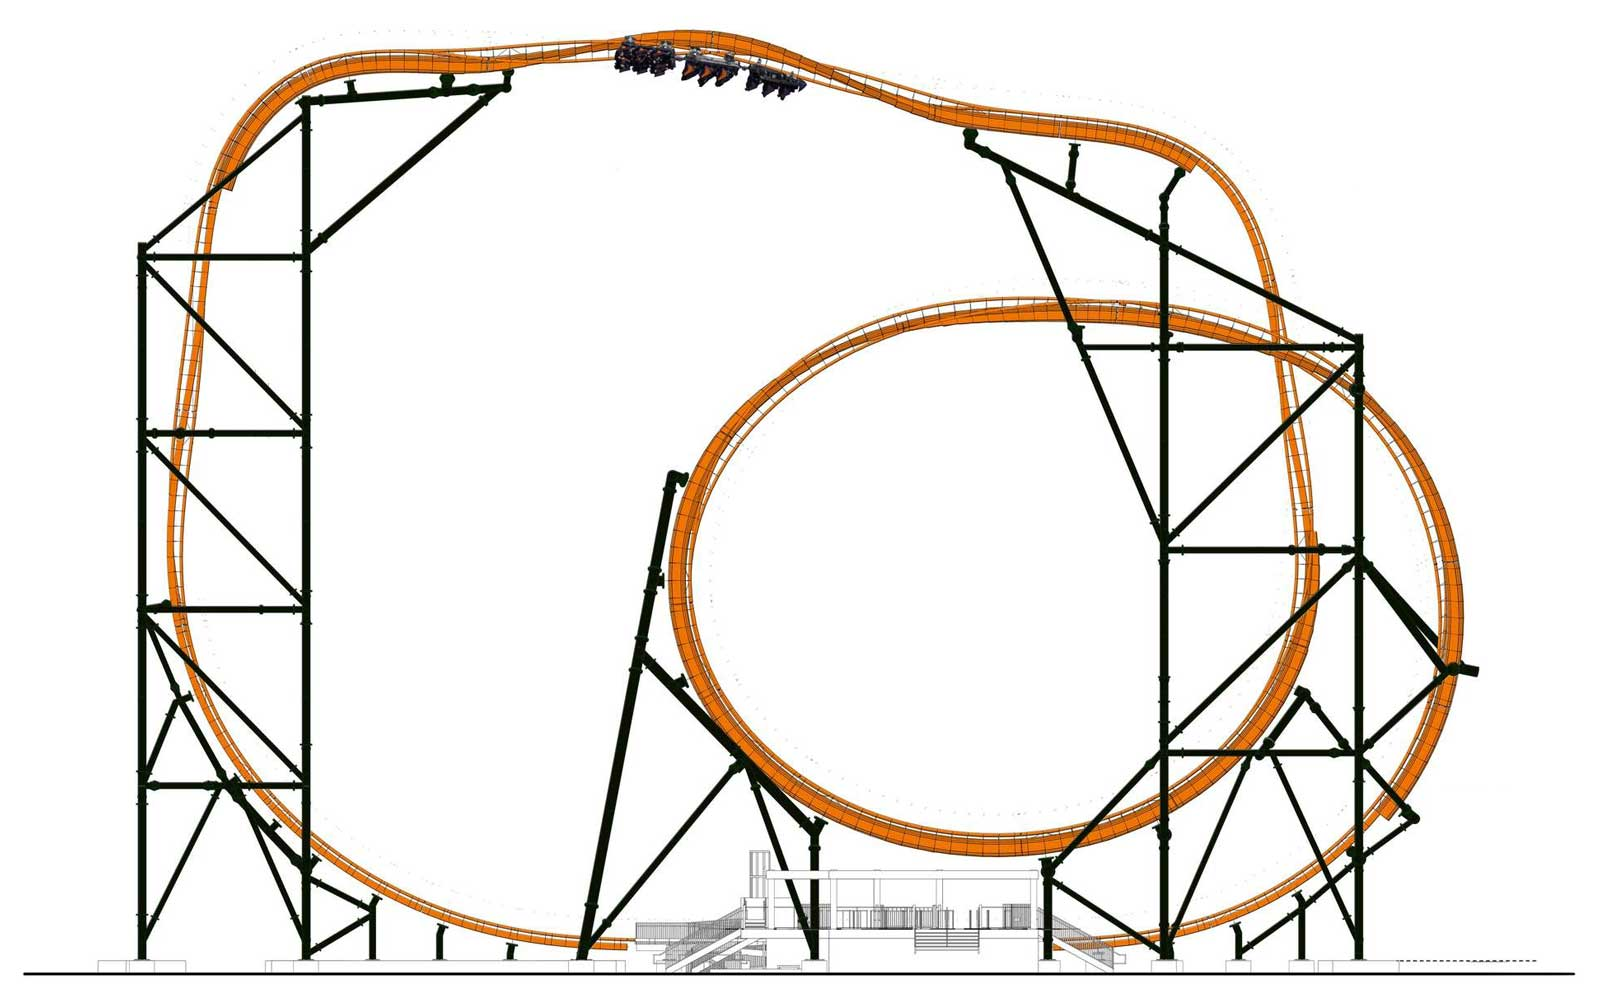 Rendering of Tigris Coaster at Busch Gardens Tampa Bay